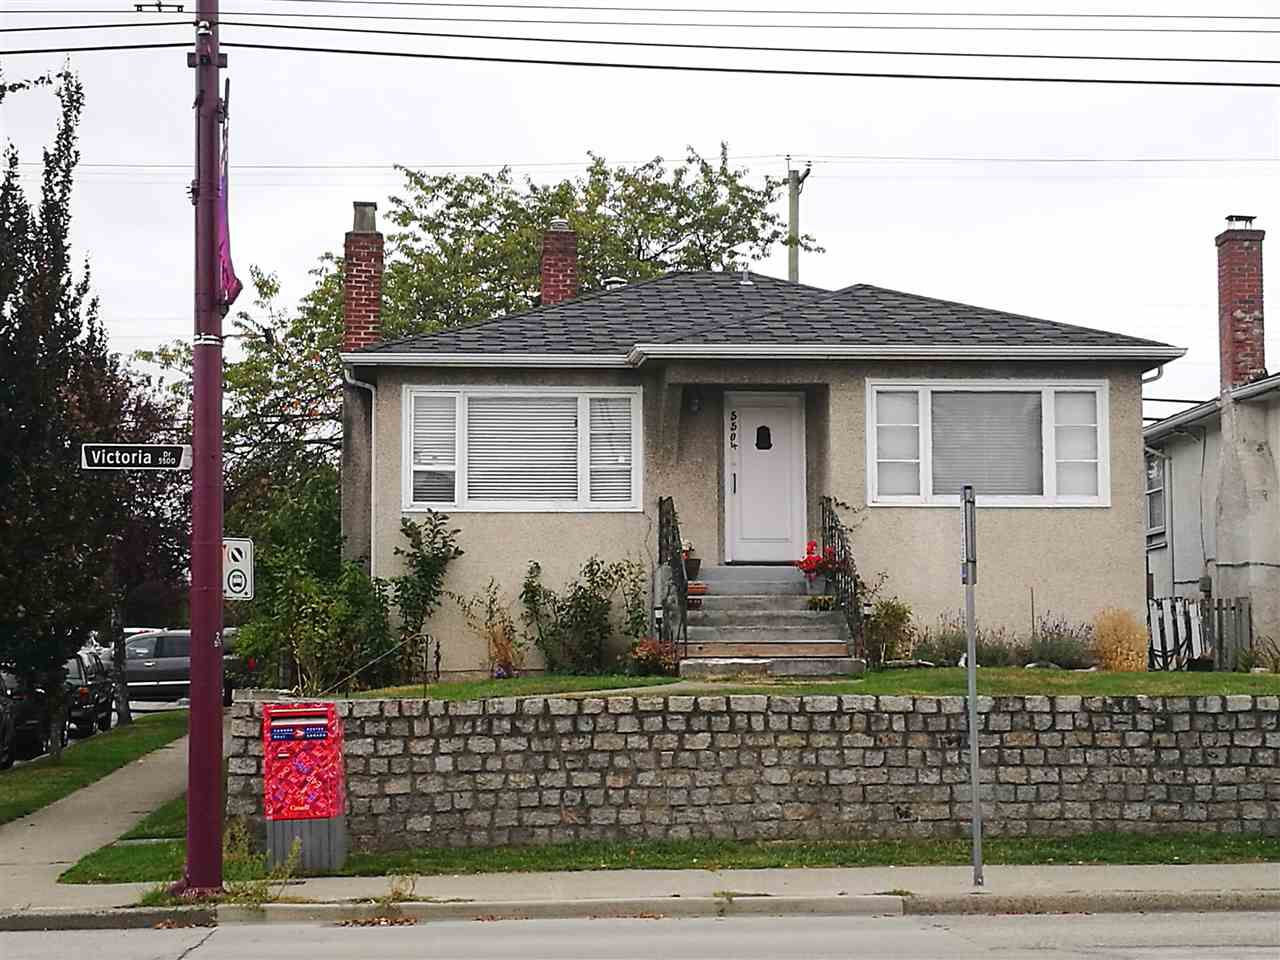 Main Photo: 5504 VICTORIA Drive in Vancouver: Victoria VE House for sale (Vancouver East)  : MLS®# R2212705